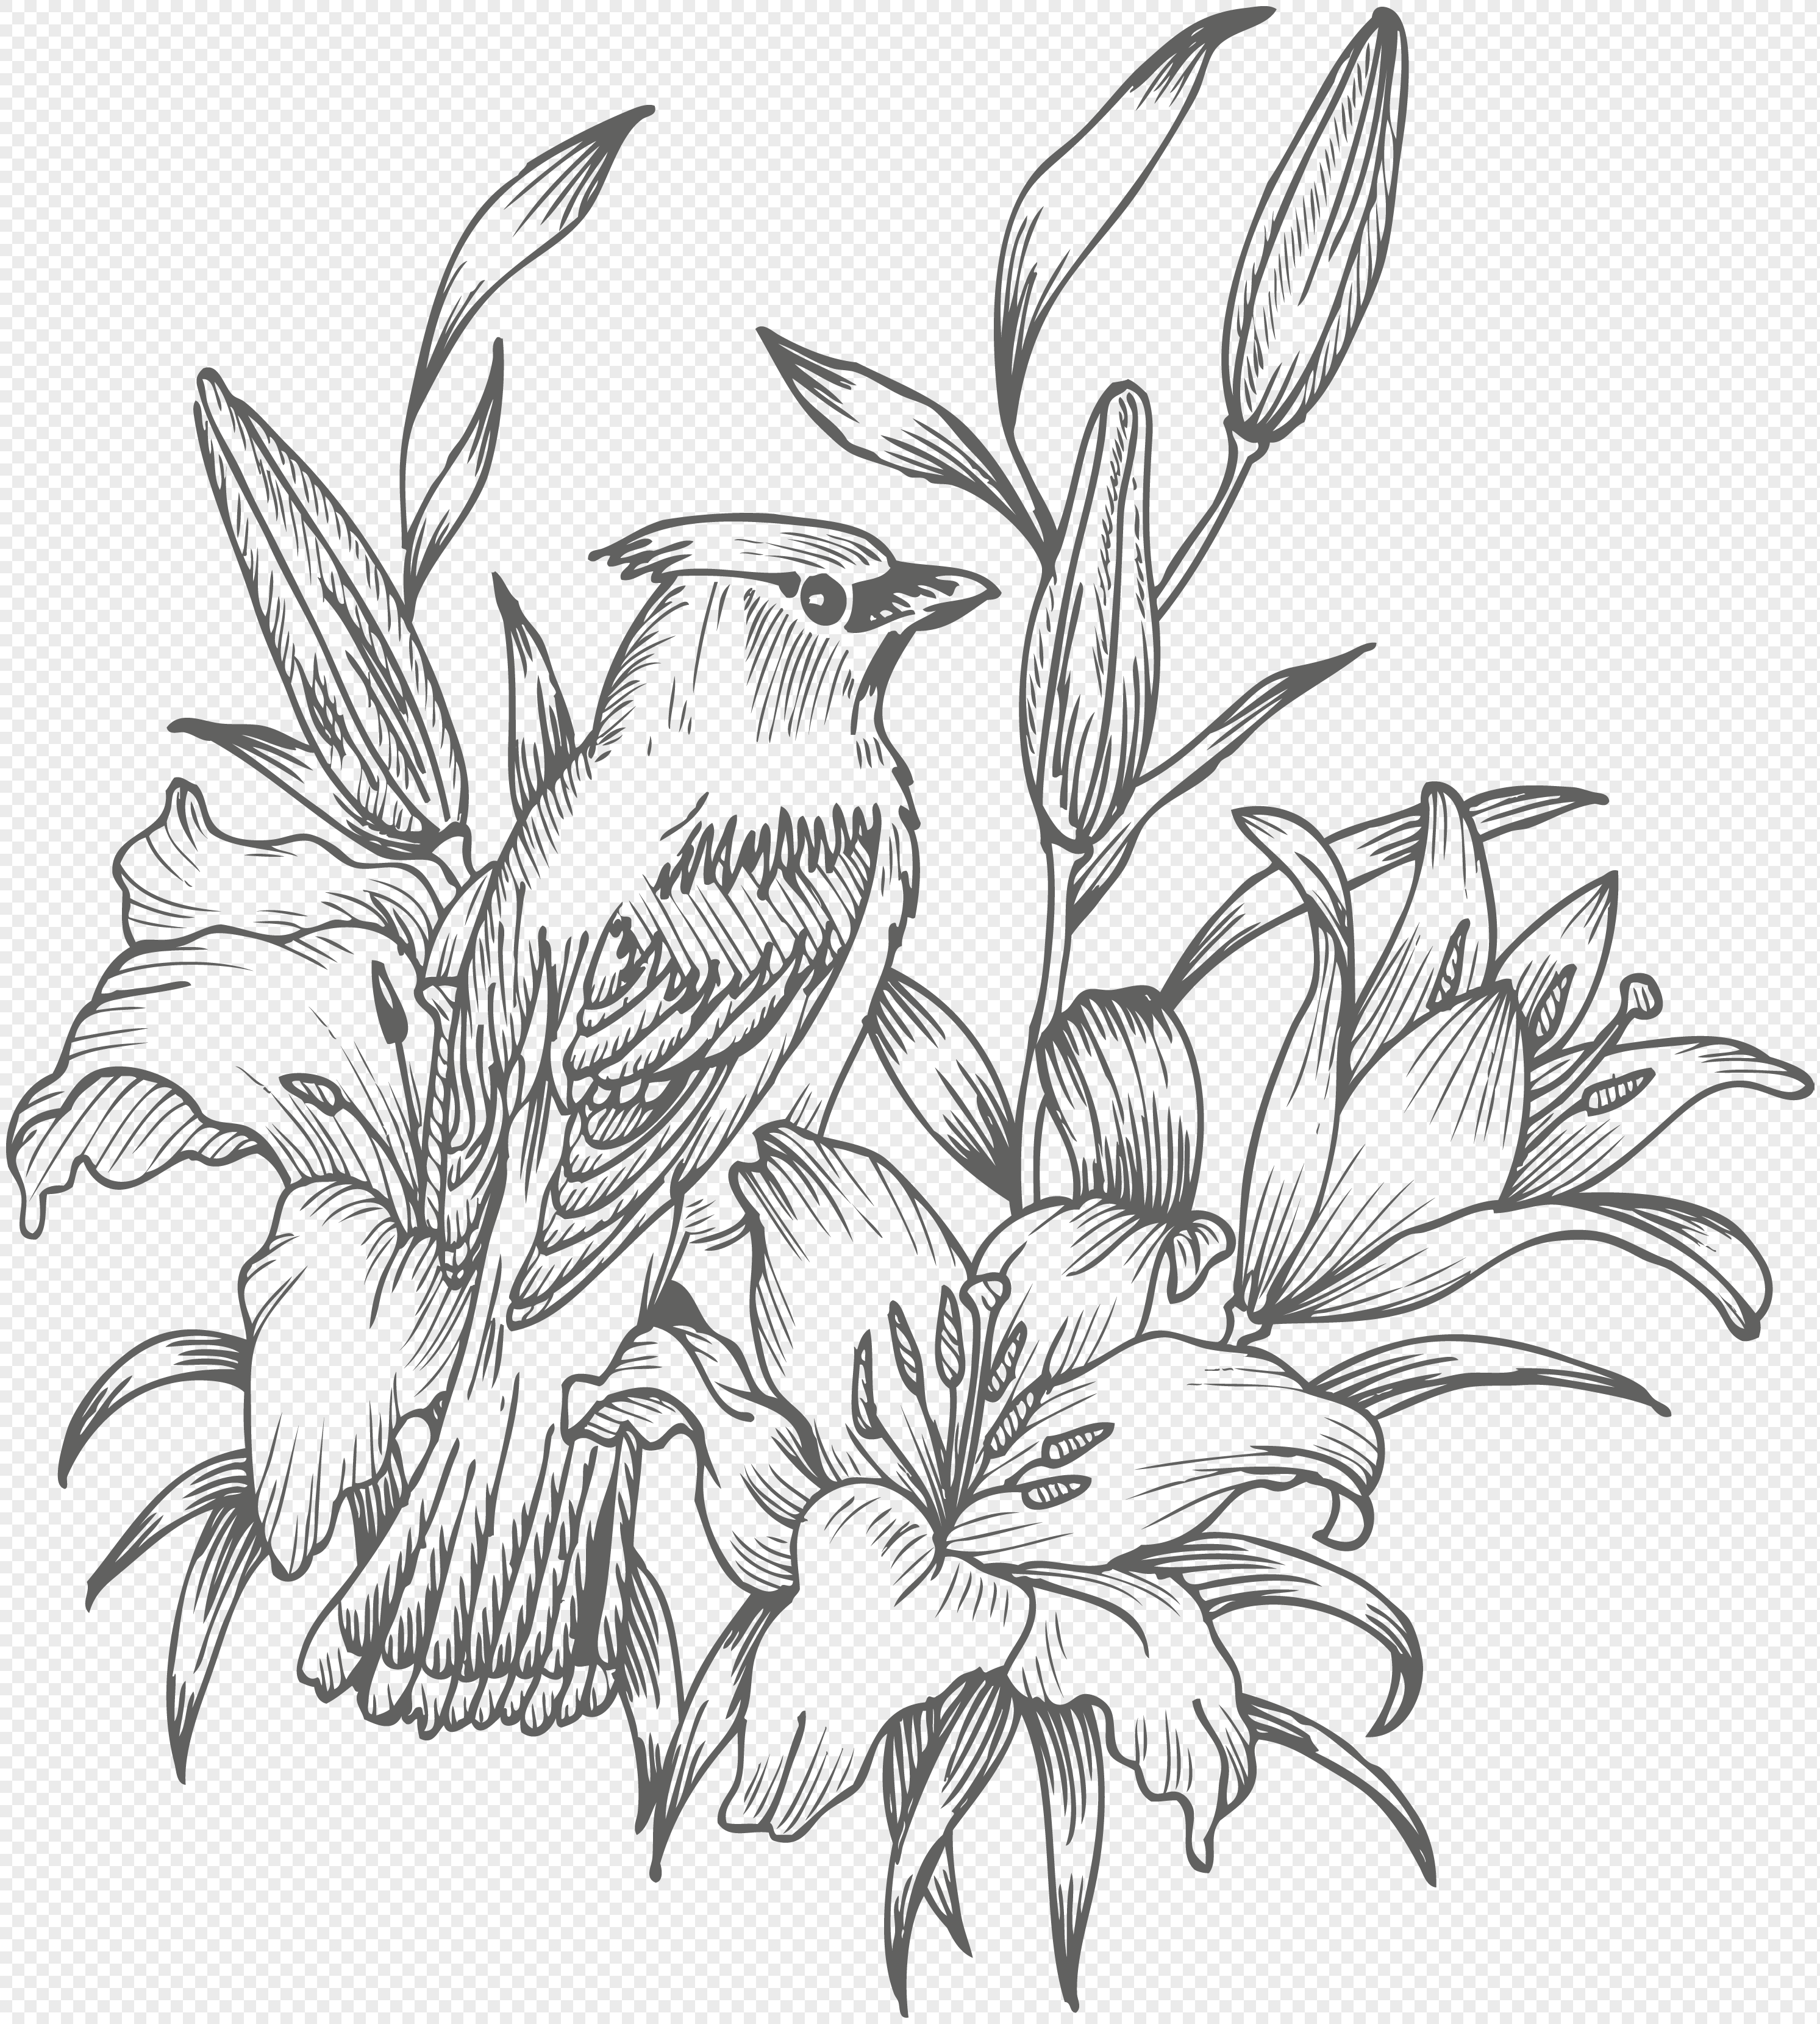 Black And White Hand Painted Flower And Bird Design Material Png